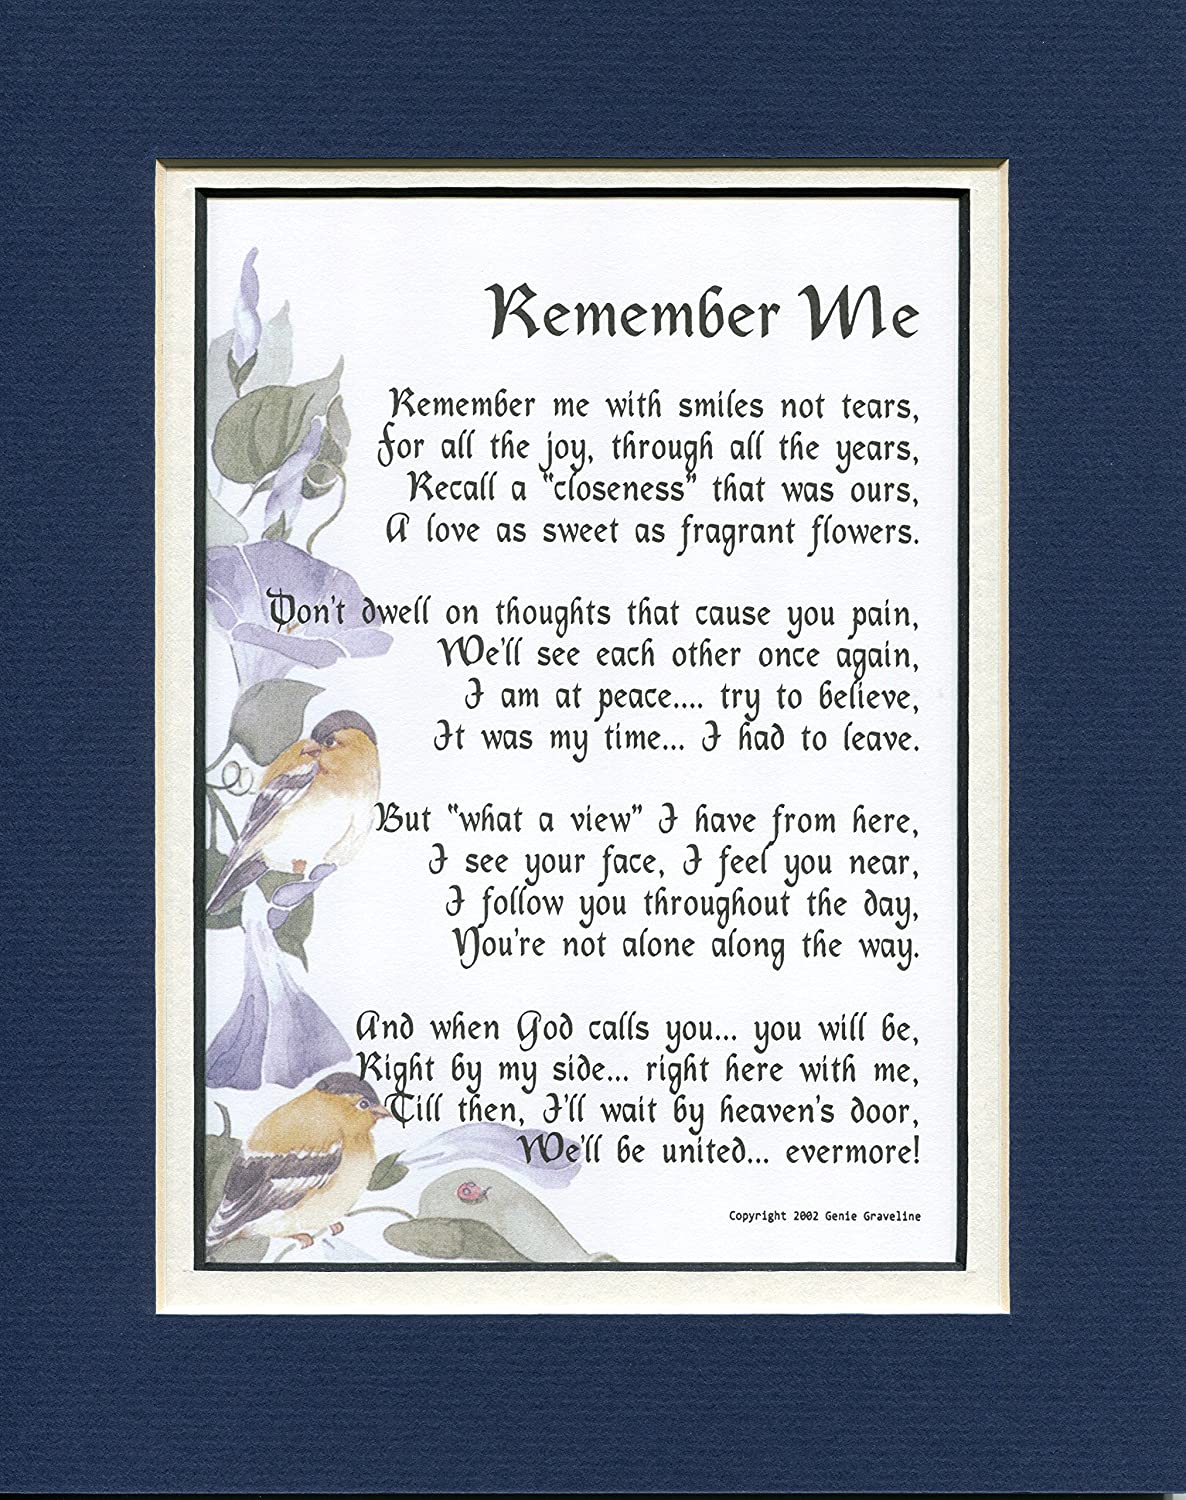 Amazon memorial gift 96 touching 8x10 bereavement poem amazon memorial gift 96 touching 8x10 bereavement poem double matted in navywhite enhanced with watercolor graphics a sympathy gift izmirmasajfo